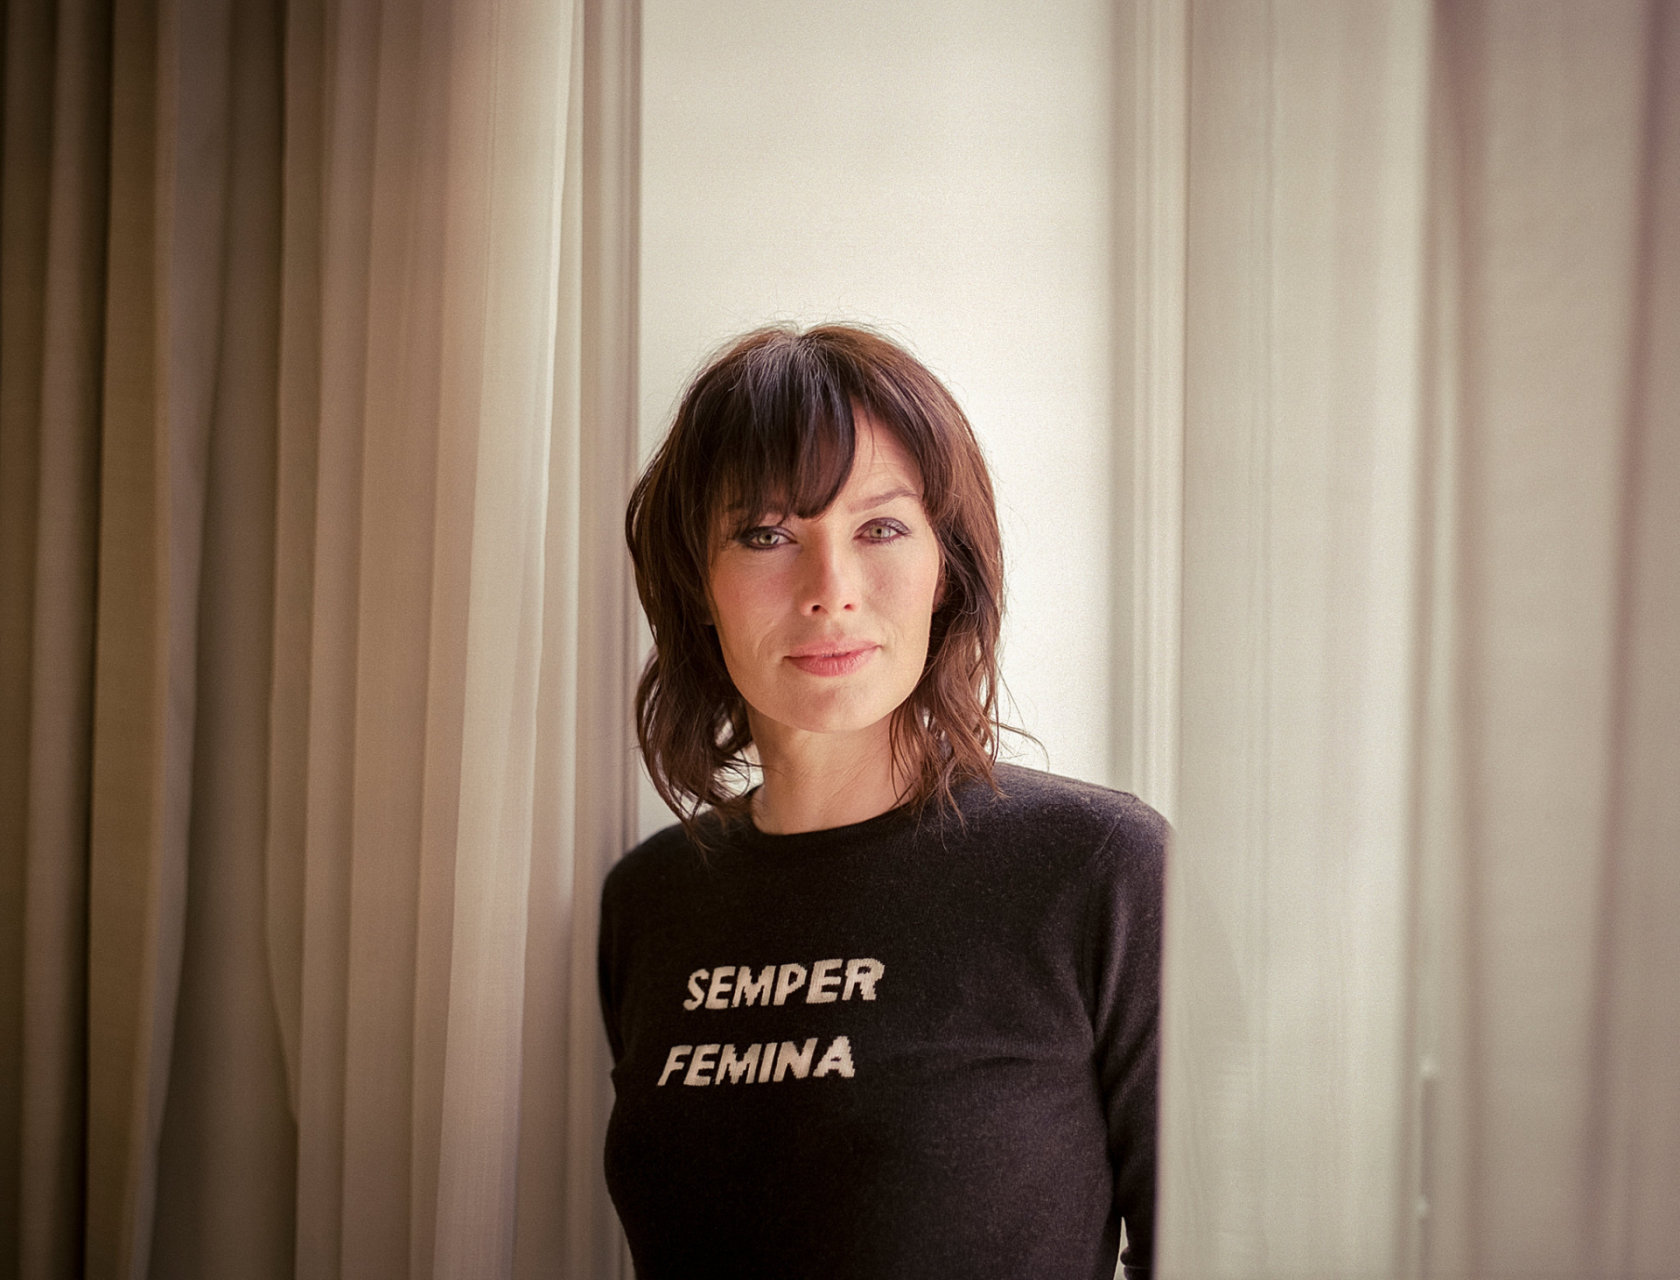 lena headey actress * 3-10-1973 MILF semper femina